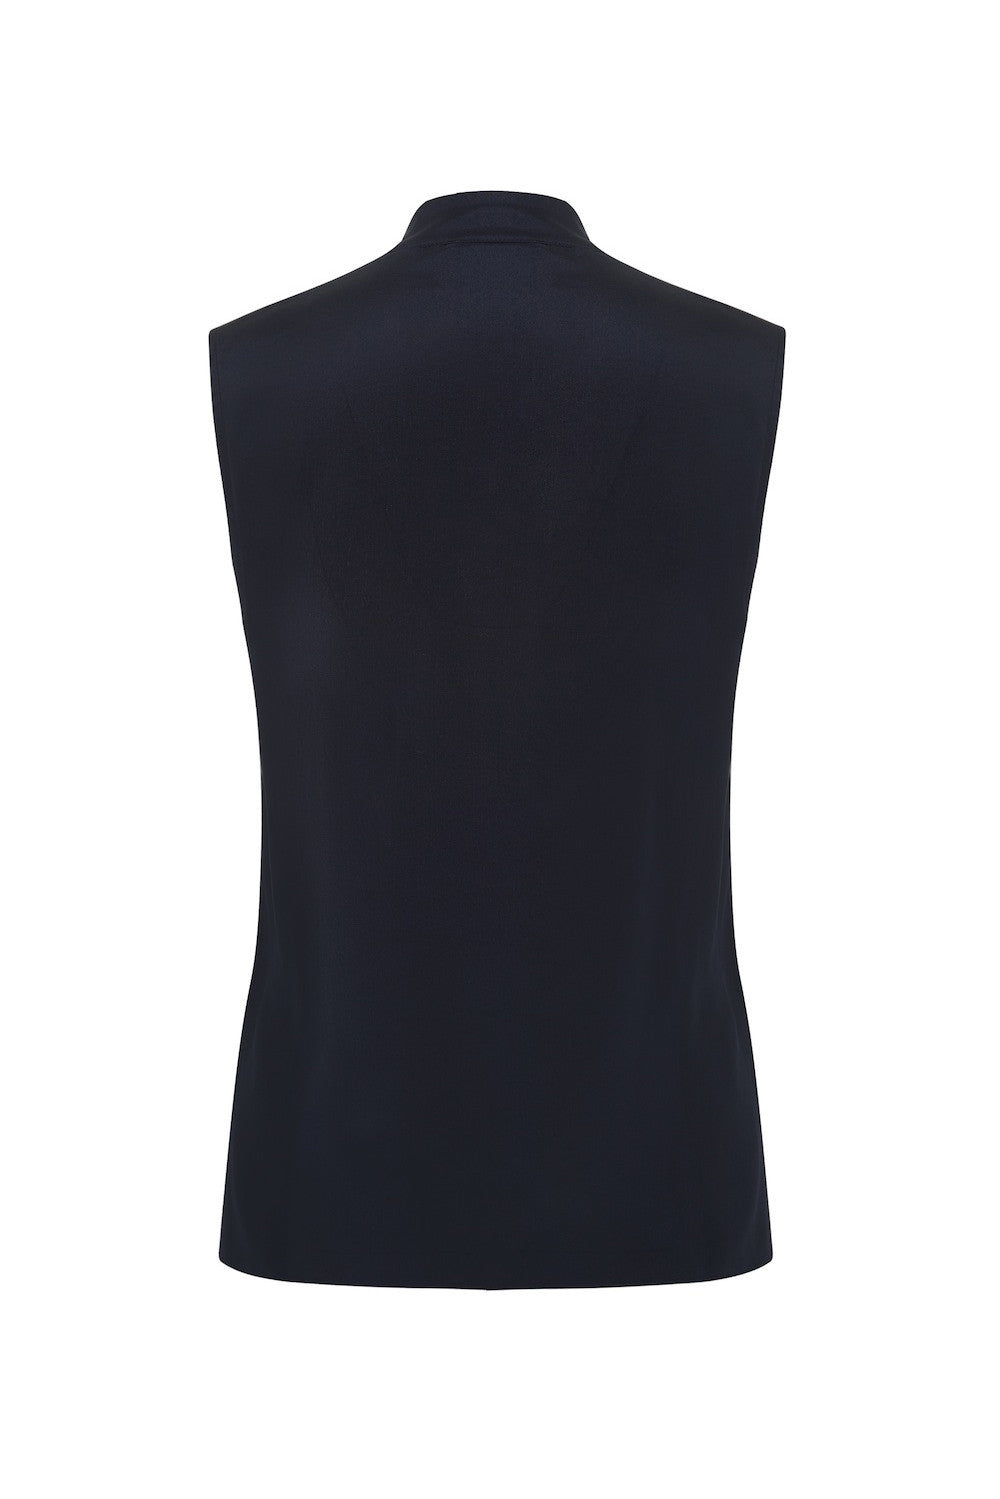 Leonie - Navy/Ivory - Womenswear - Madderson London